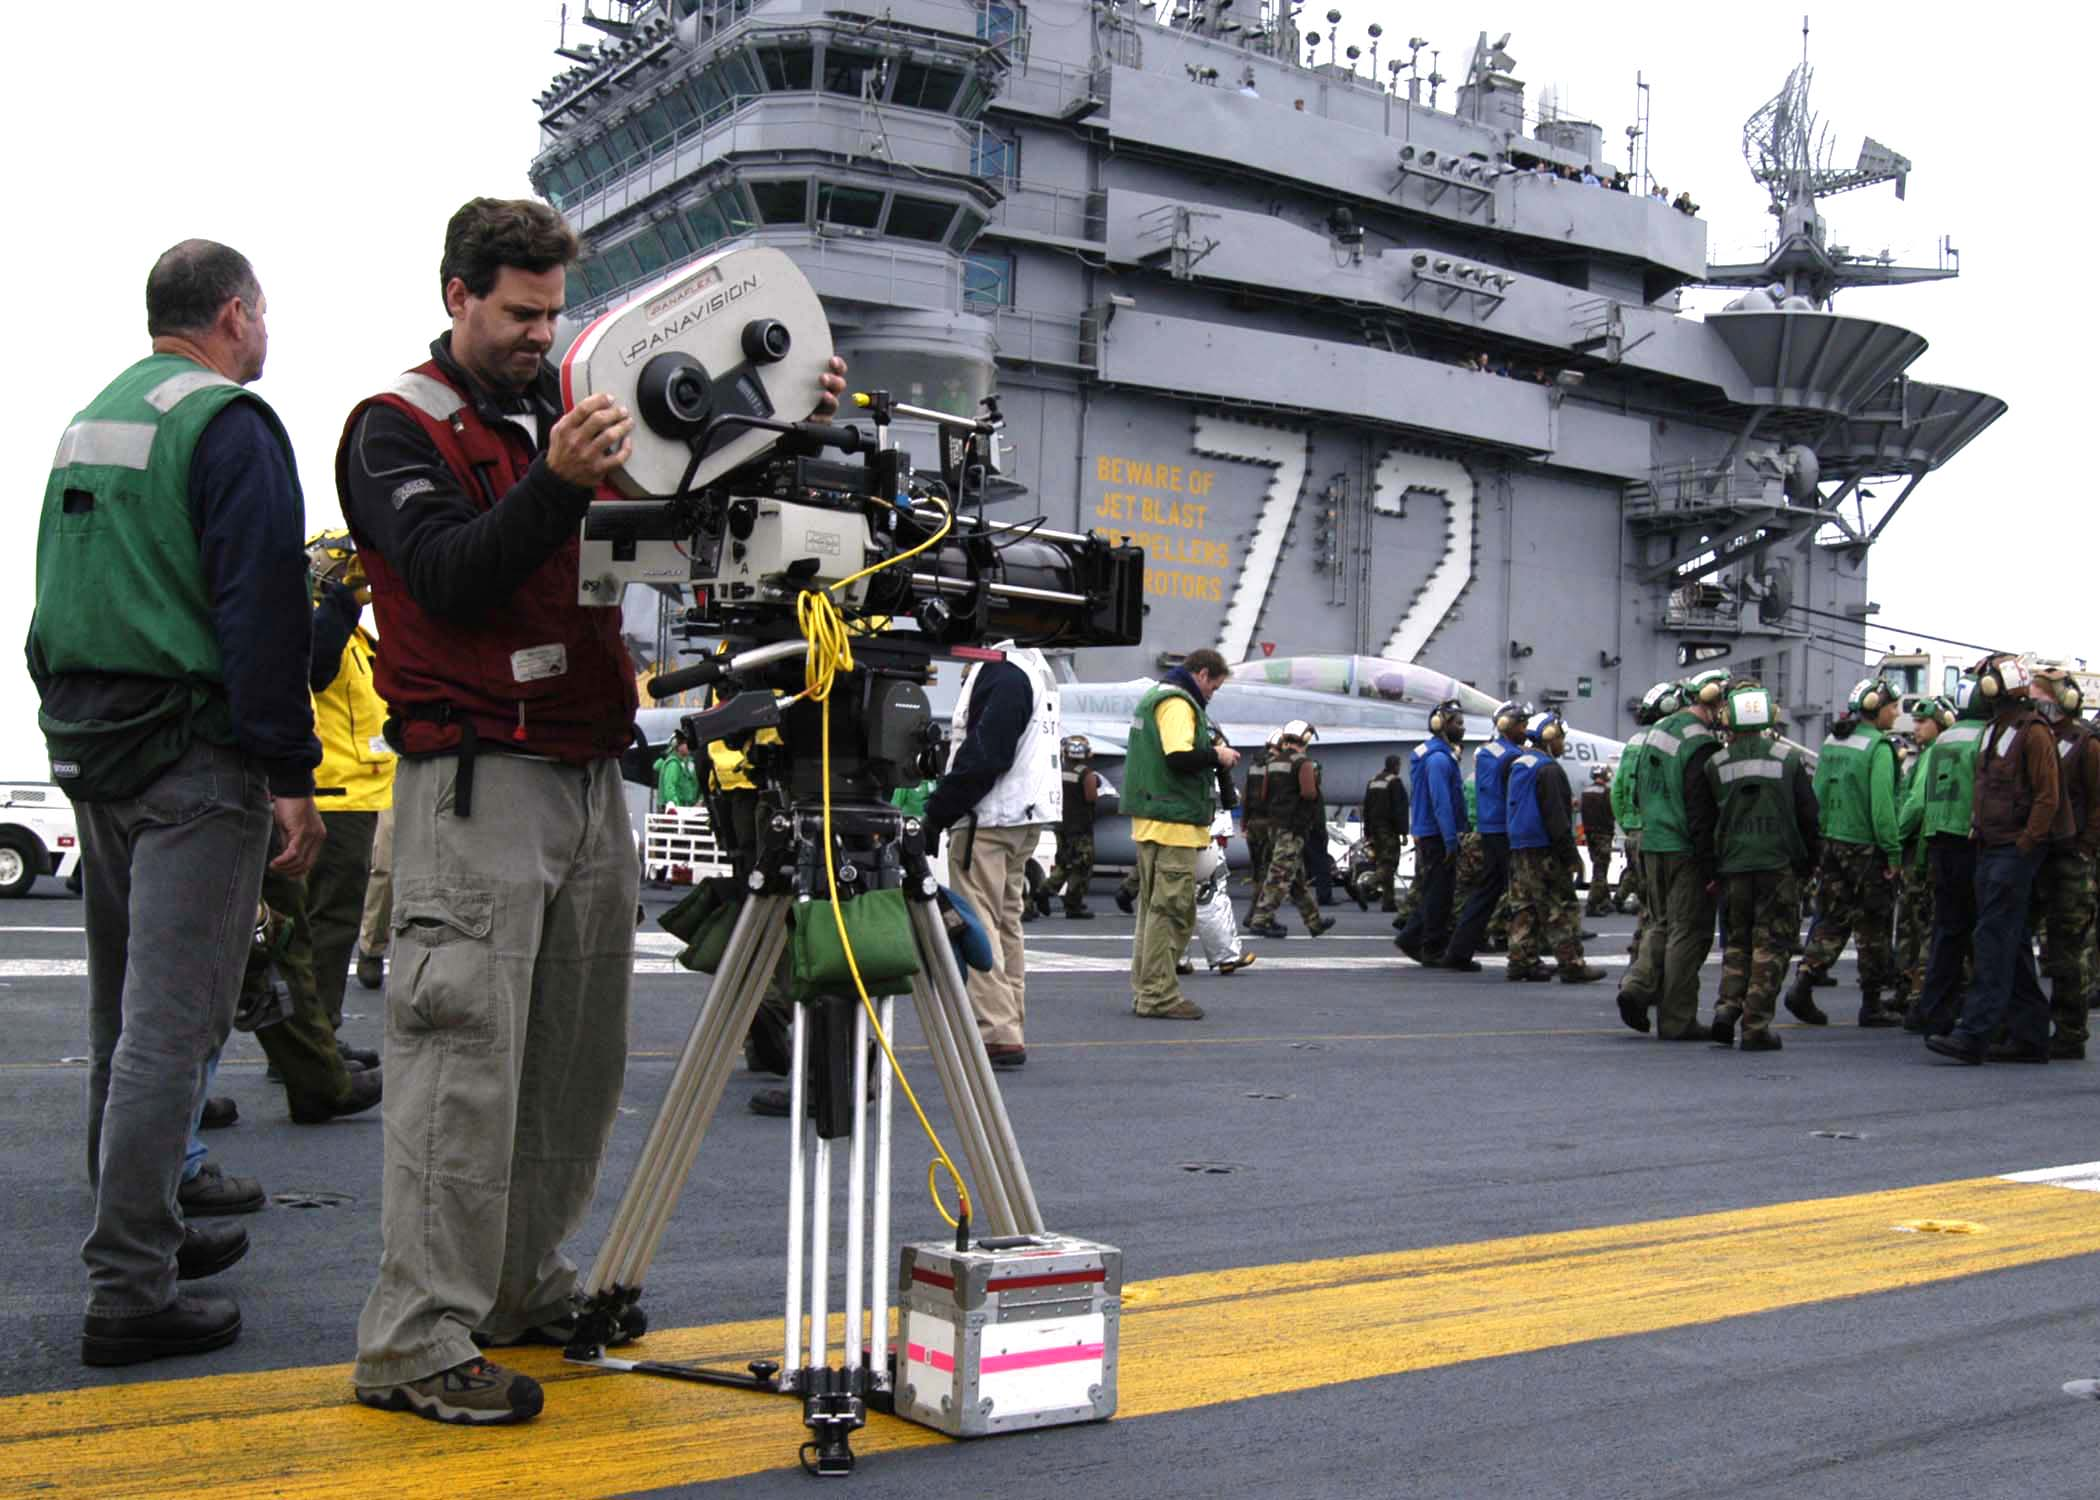 "Aboard USS Abraham Lincoln (CVN 72) June 15, 2004--With crew of USS Abrahm Lincoln in front of the camera, the crew of the upcoming movie ""Stealth"" set up for scenes to be taped on the flight deck.  After 10 1/2 months of Dry Docked Planned Incremental Availability (DPIA), Abraham Lincoln is currently conducting local operations in preparation for deployment next year.  U.S. Navy photo by PH3(AW) Tyler J. Clements.  Approved for release by ALSG Public Affairs Officer LCDR John Daniels."